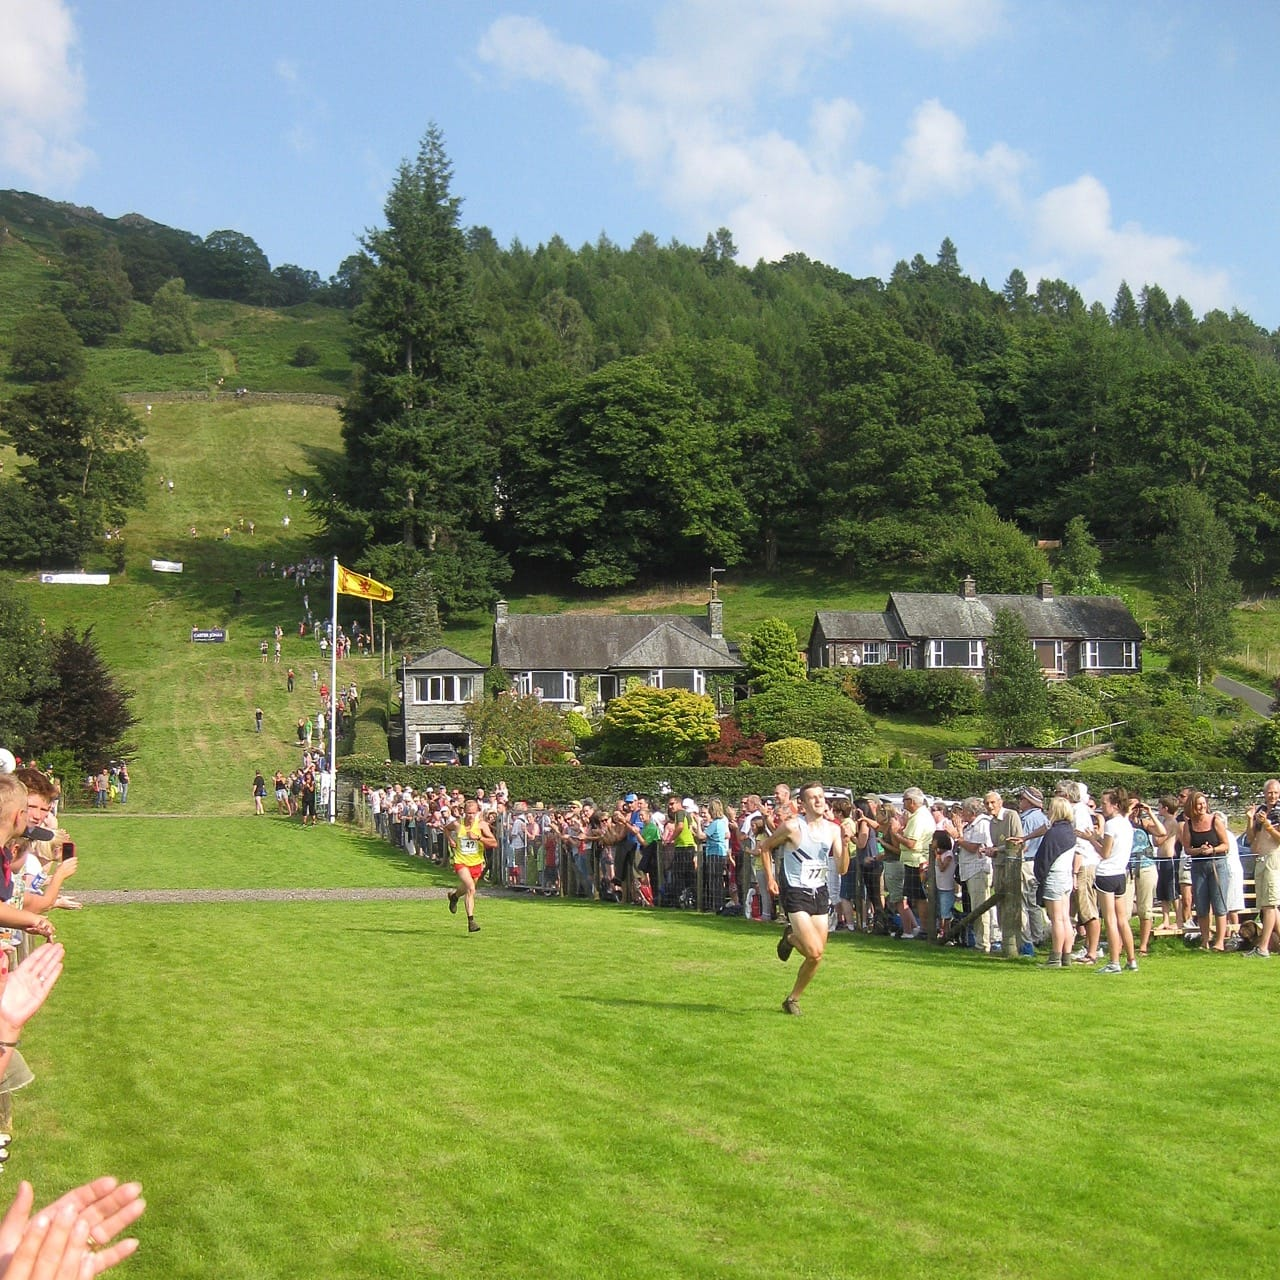 Fell runners finish coming off the fells at the Grasmere Sports Day. Photo by Wolf Gang